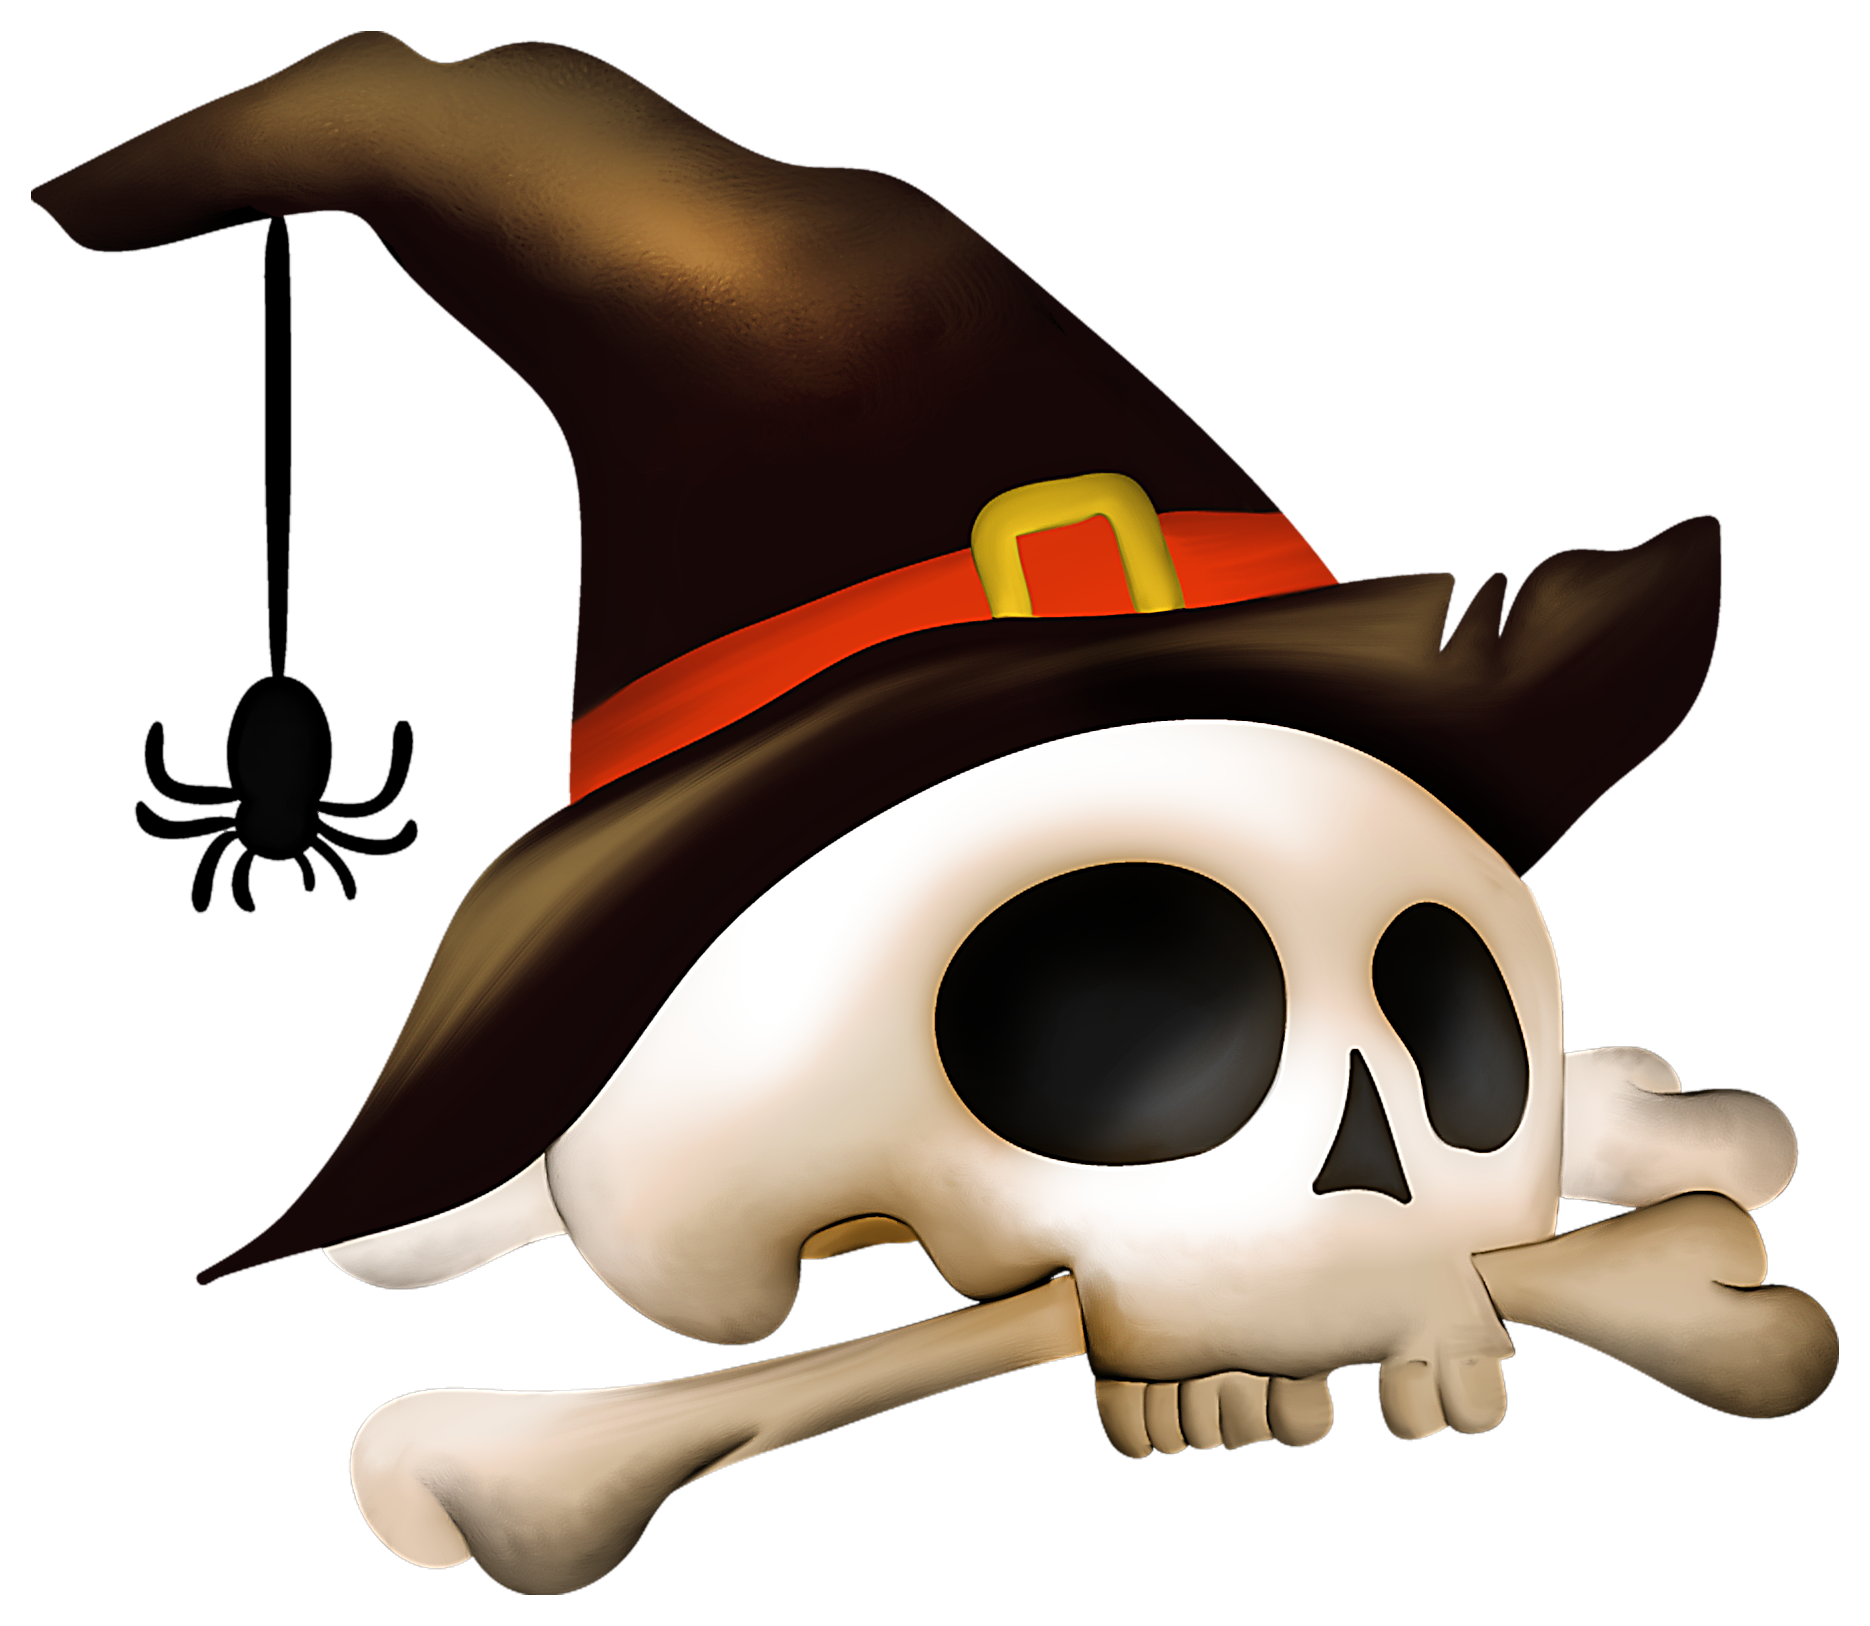 8 2 halloween free download png